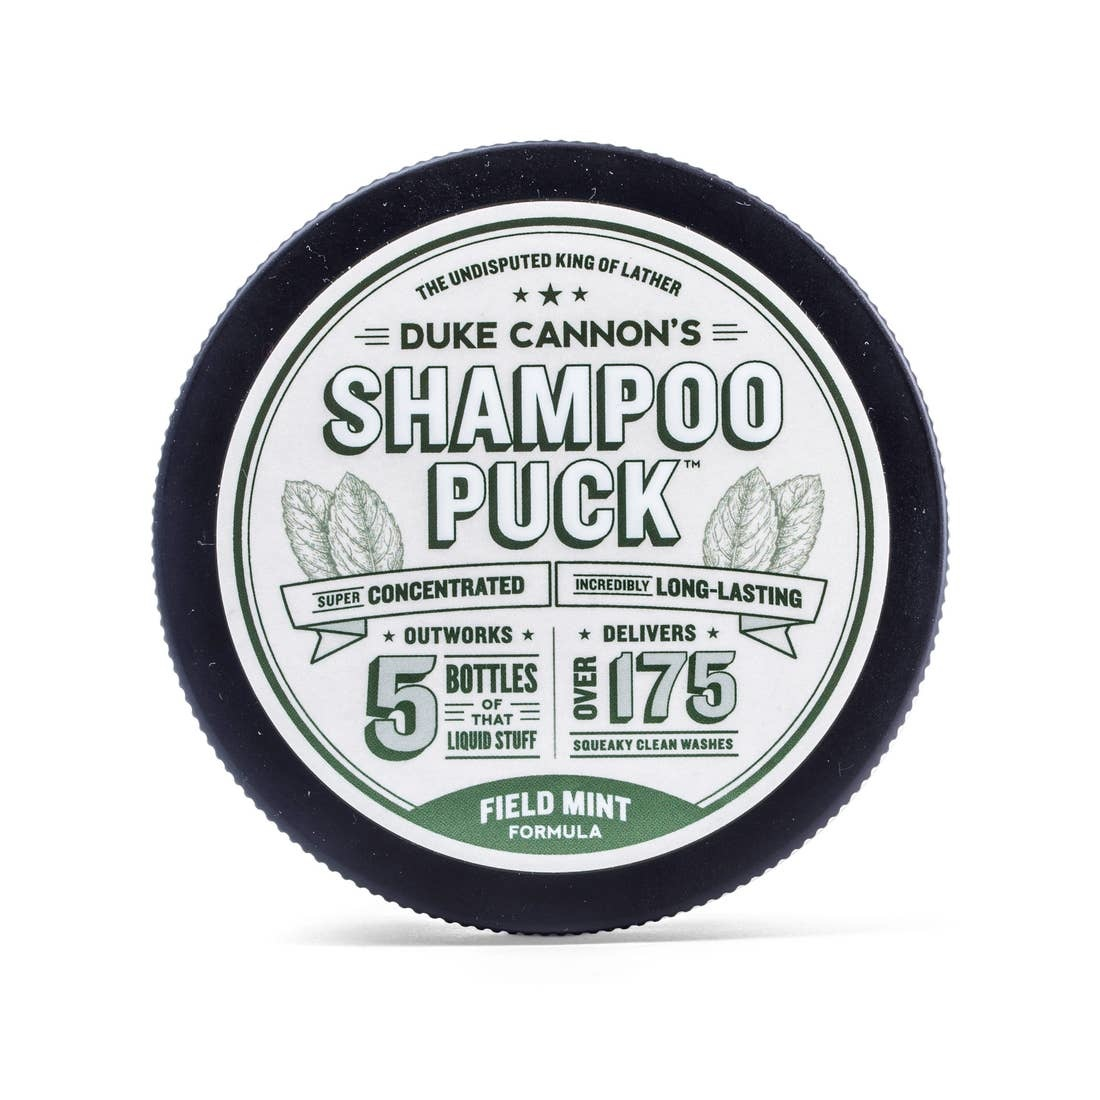 Duke Cannon Shampoo Puck/Field Mint